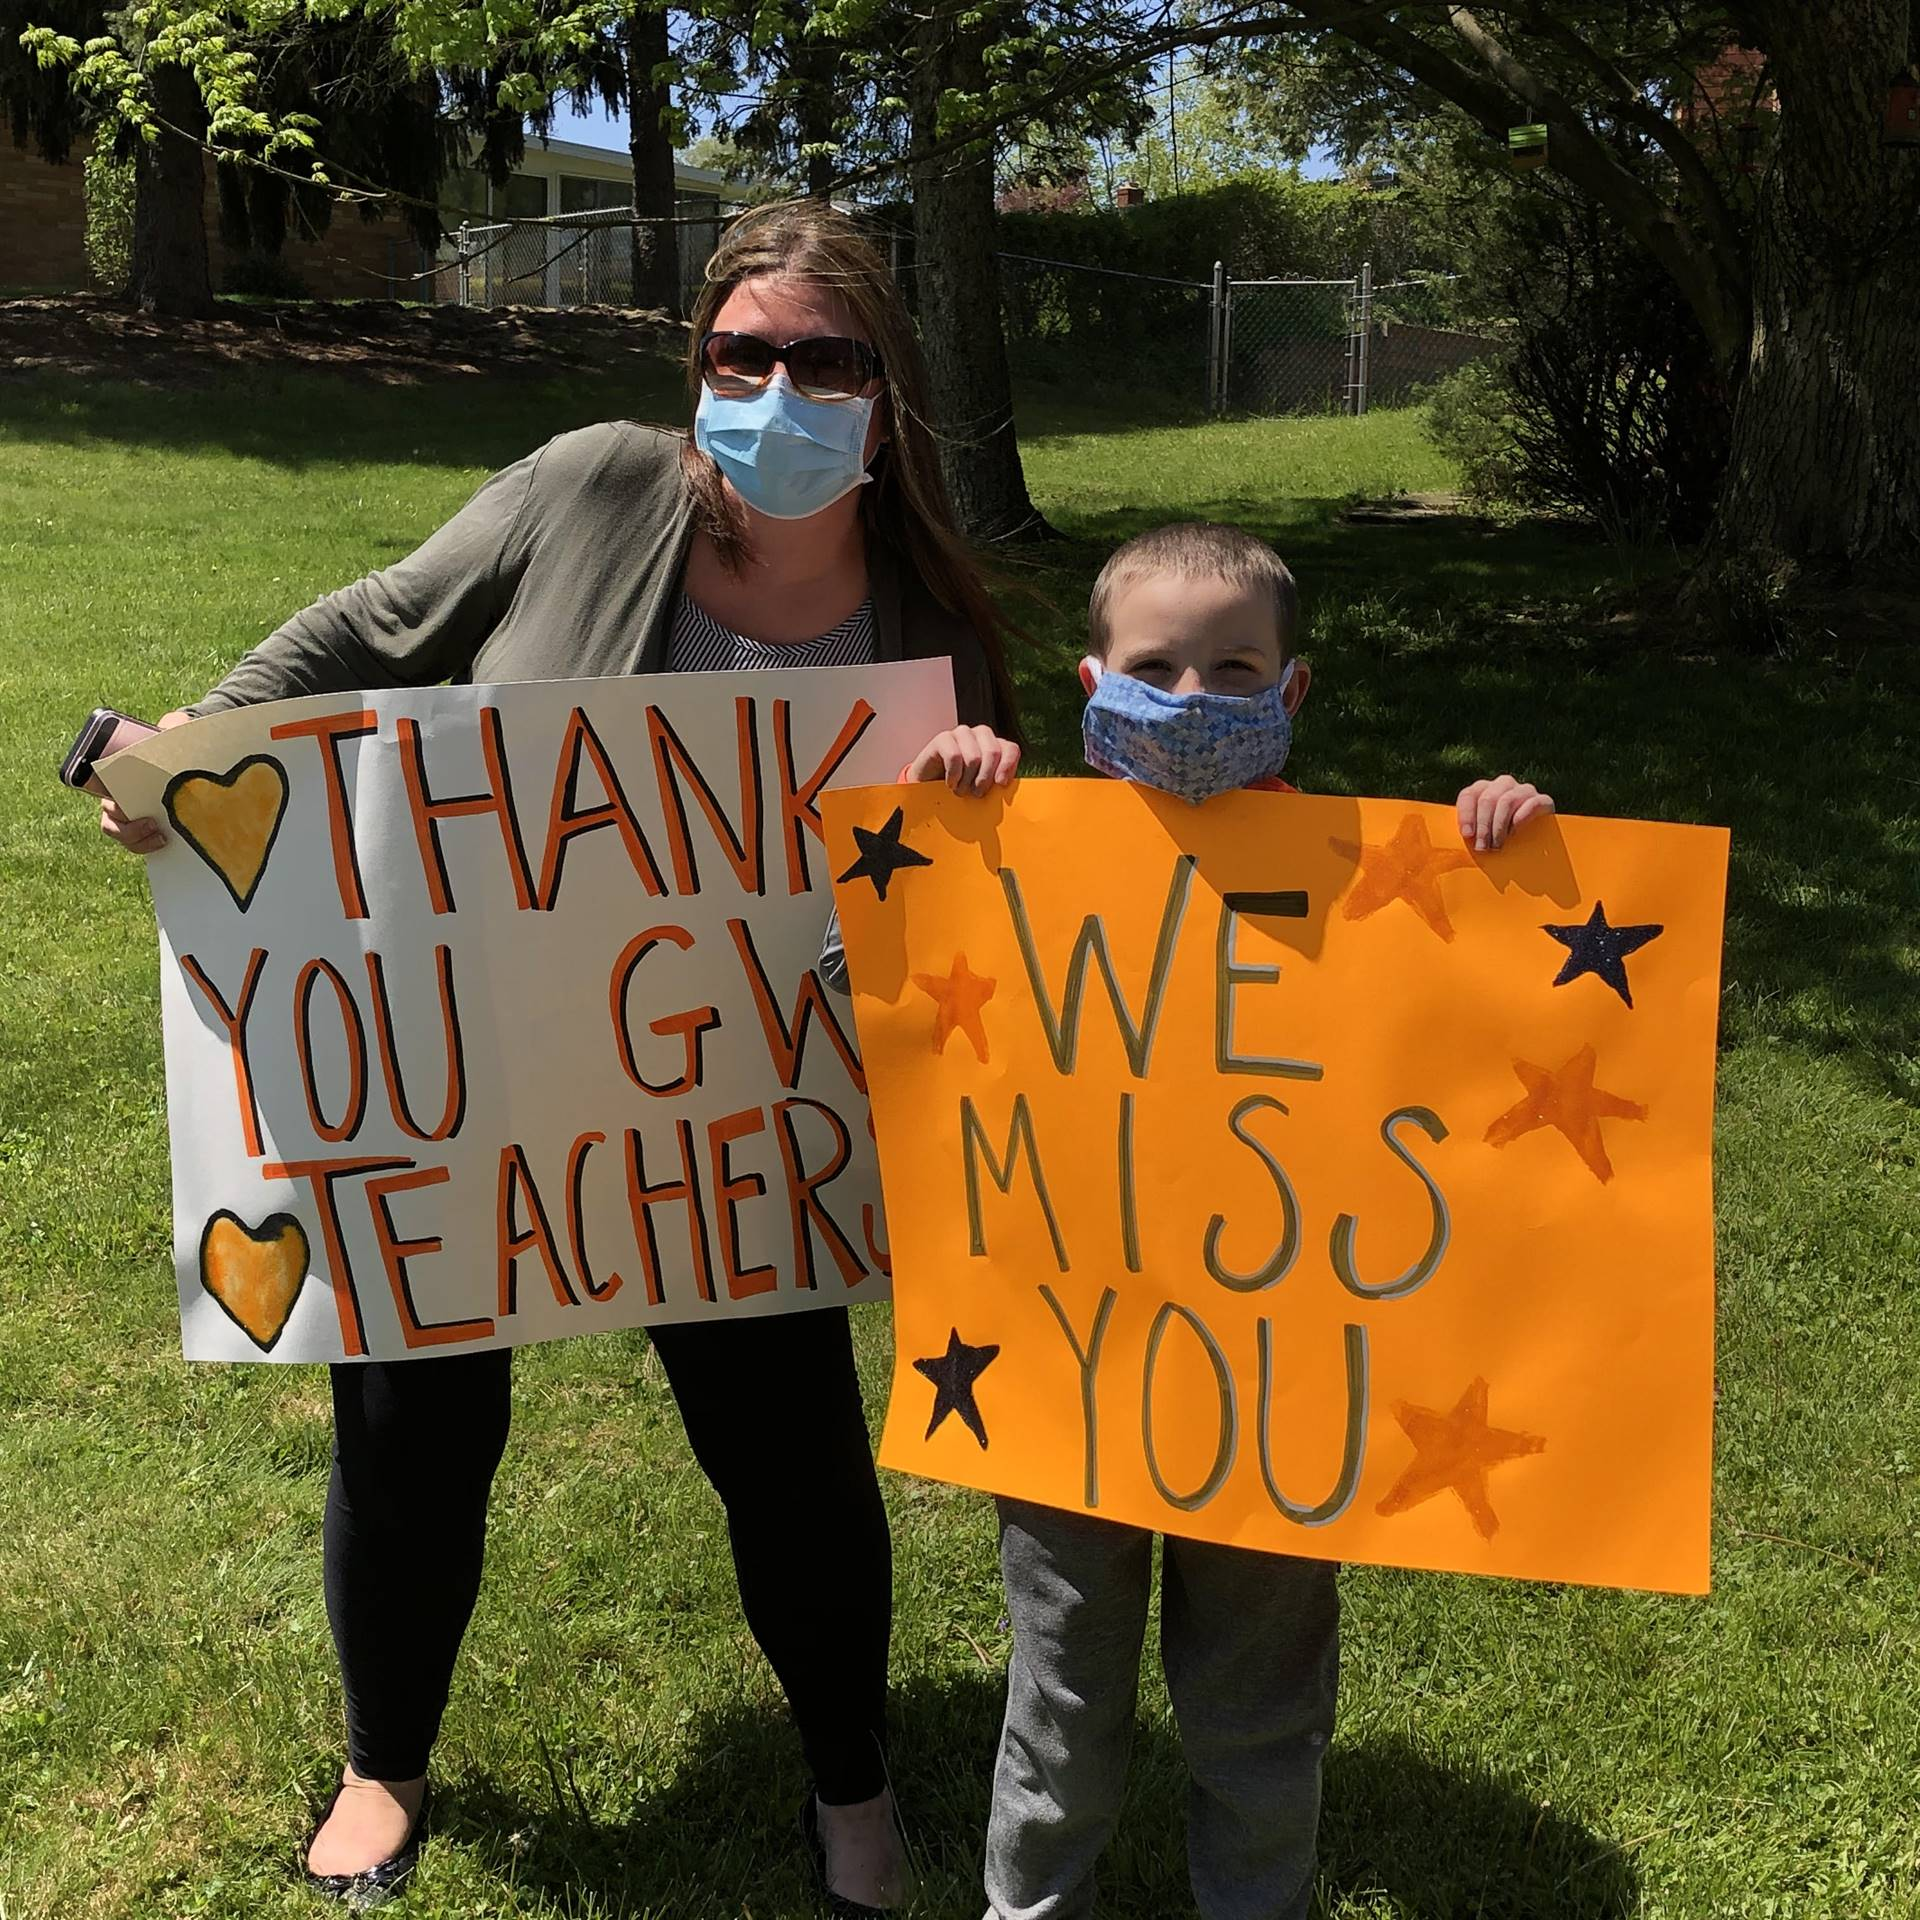 Student and parent holding signs